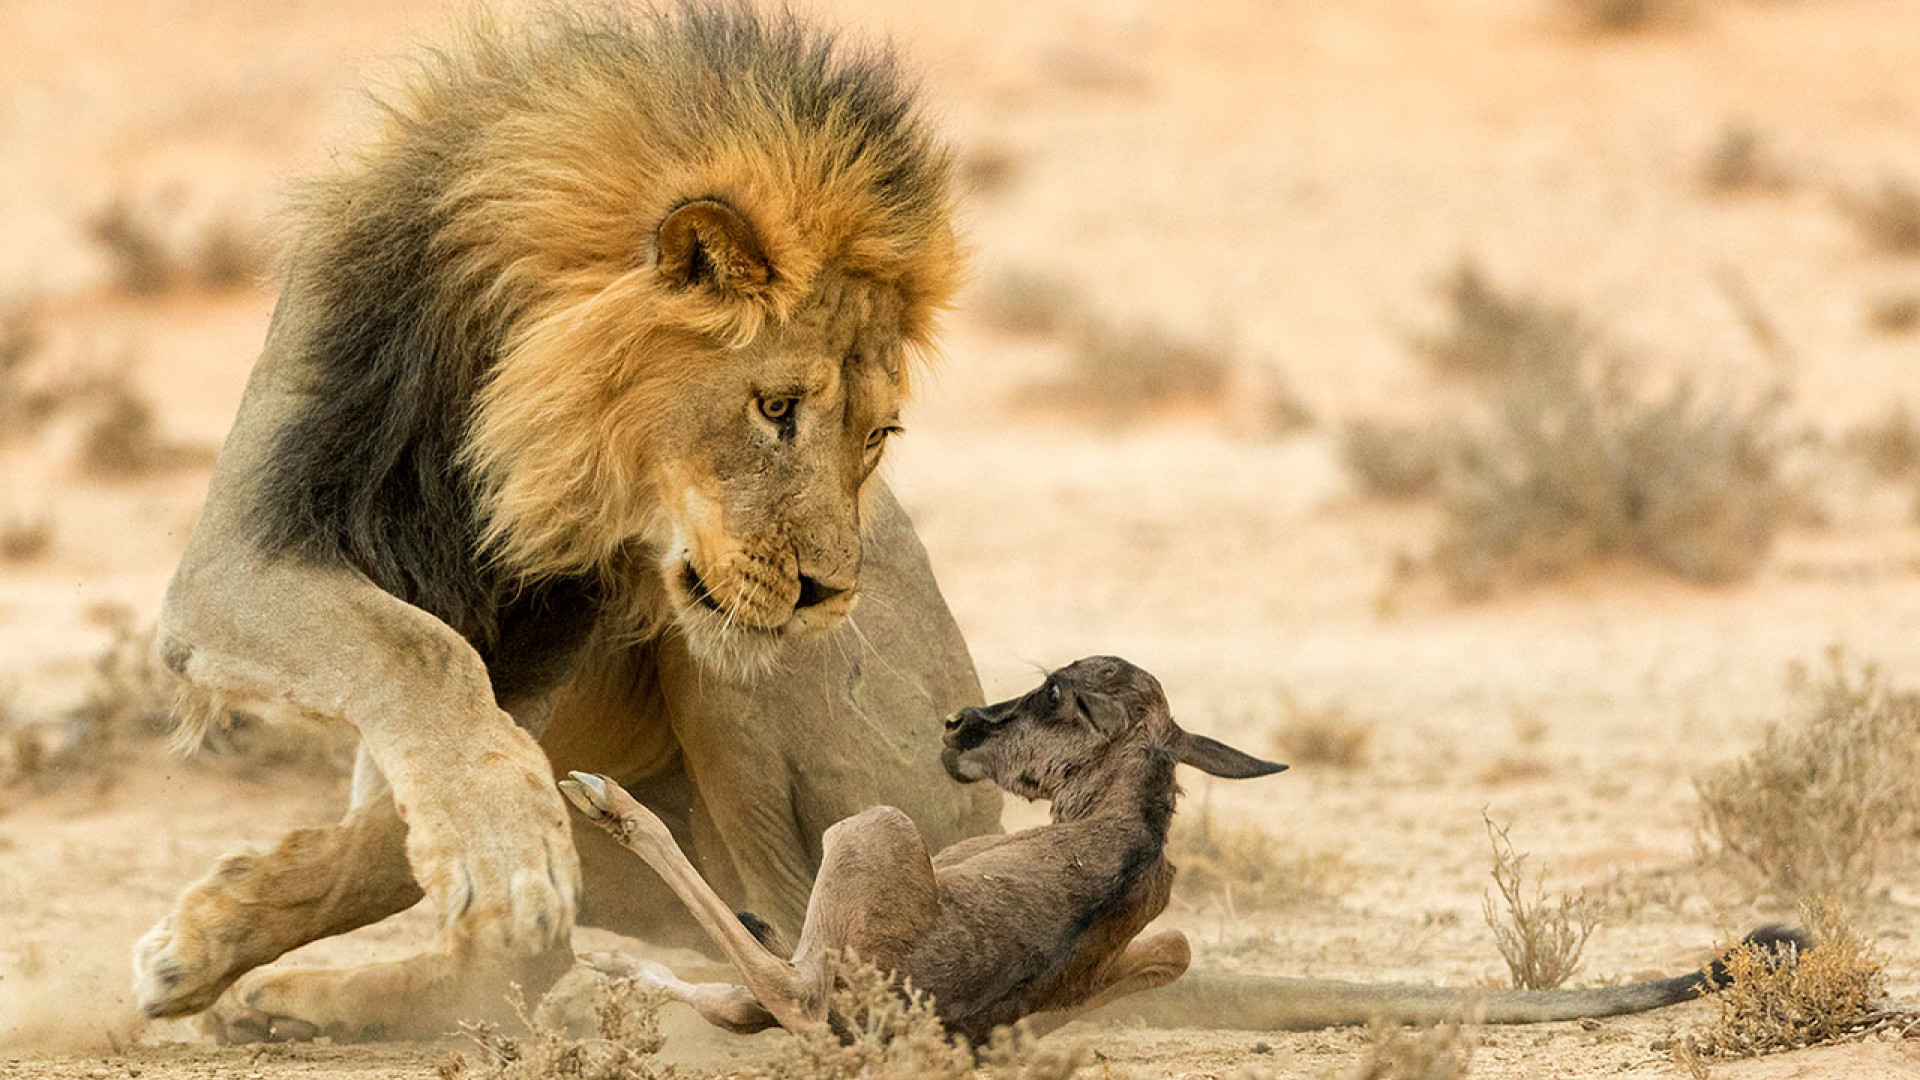 A baby wildebeest being killed by a male lion